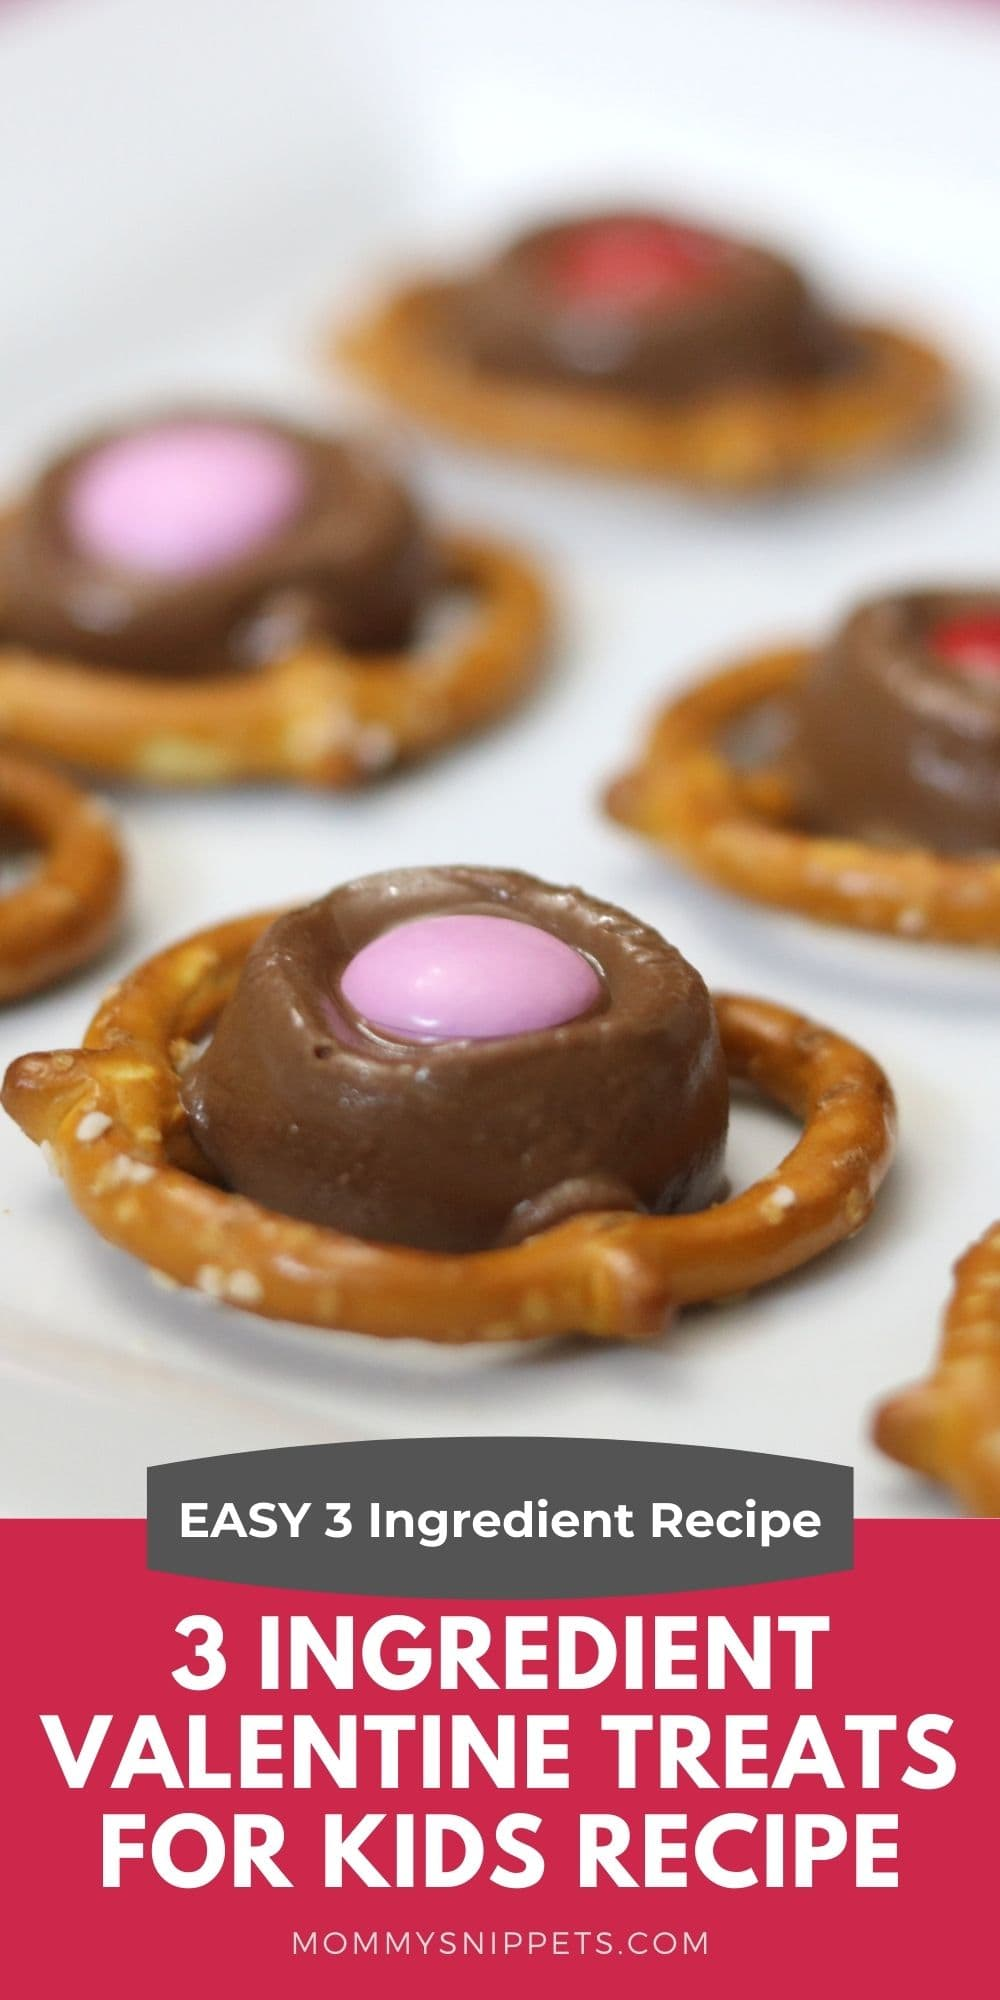 3 Ingredient Valentine Treats for Kids – an Easy Pretzel Treats Recipe- MommySnippets.com